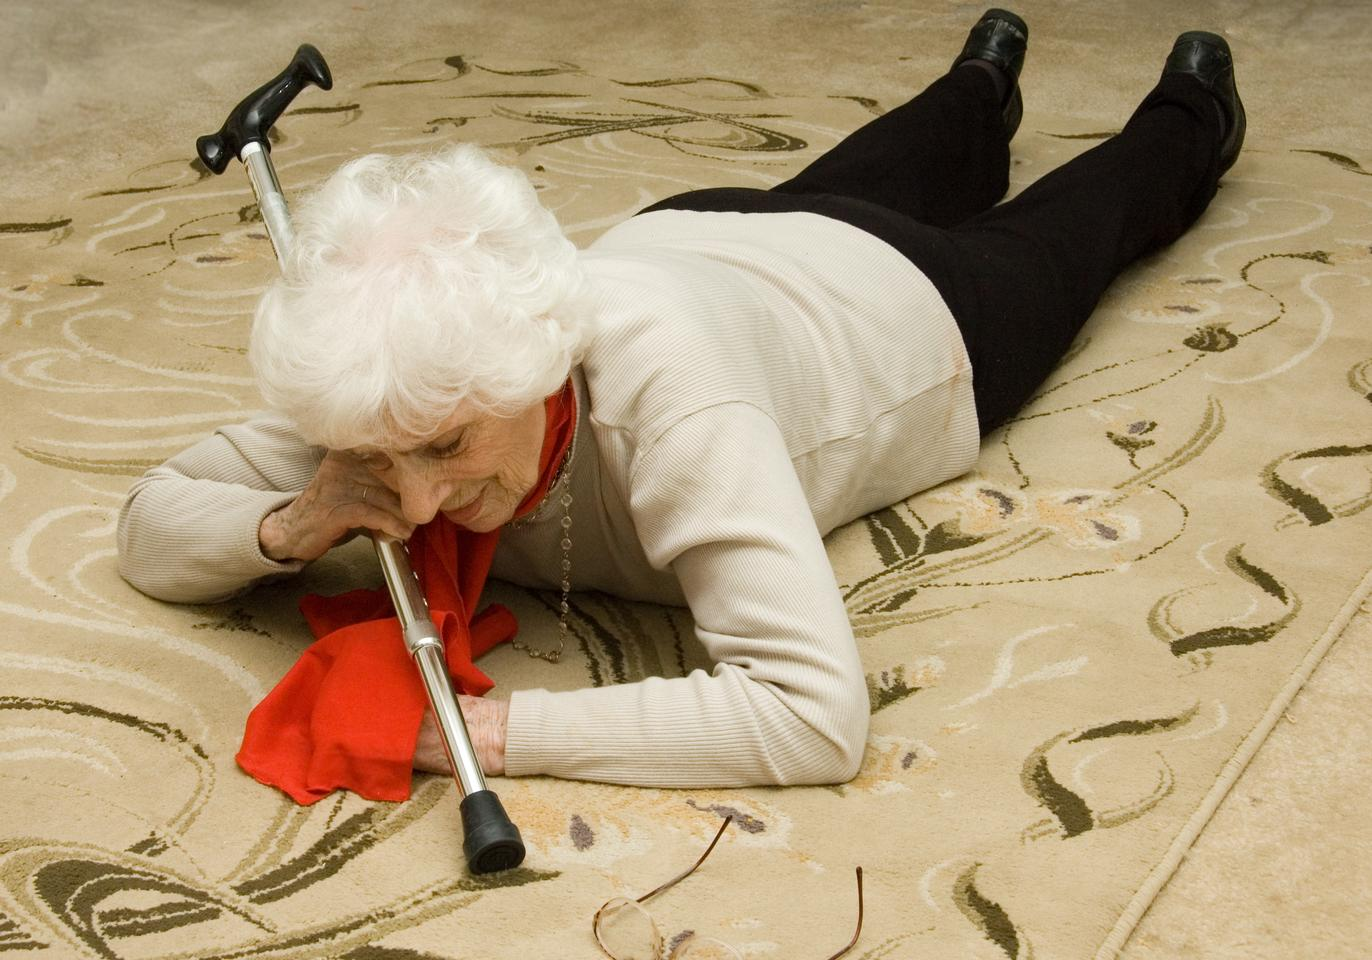 safe@home detects seniors' falls, and contacts people who can help (Photo: Shutterstock)